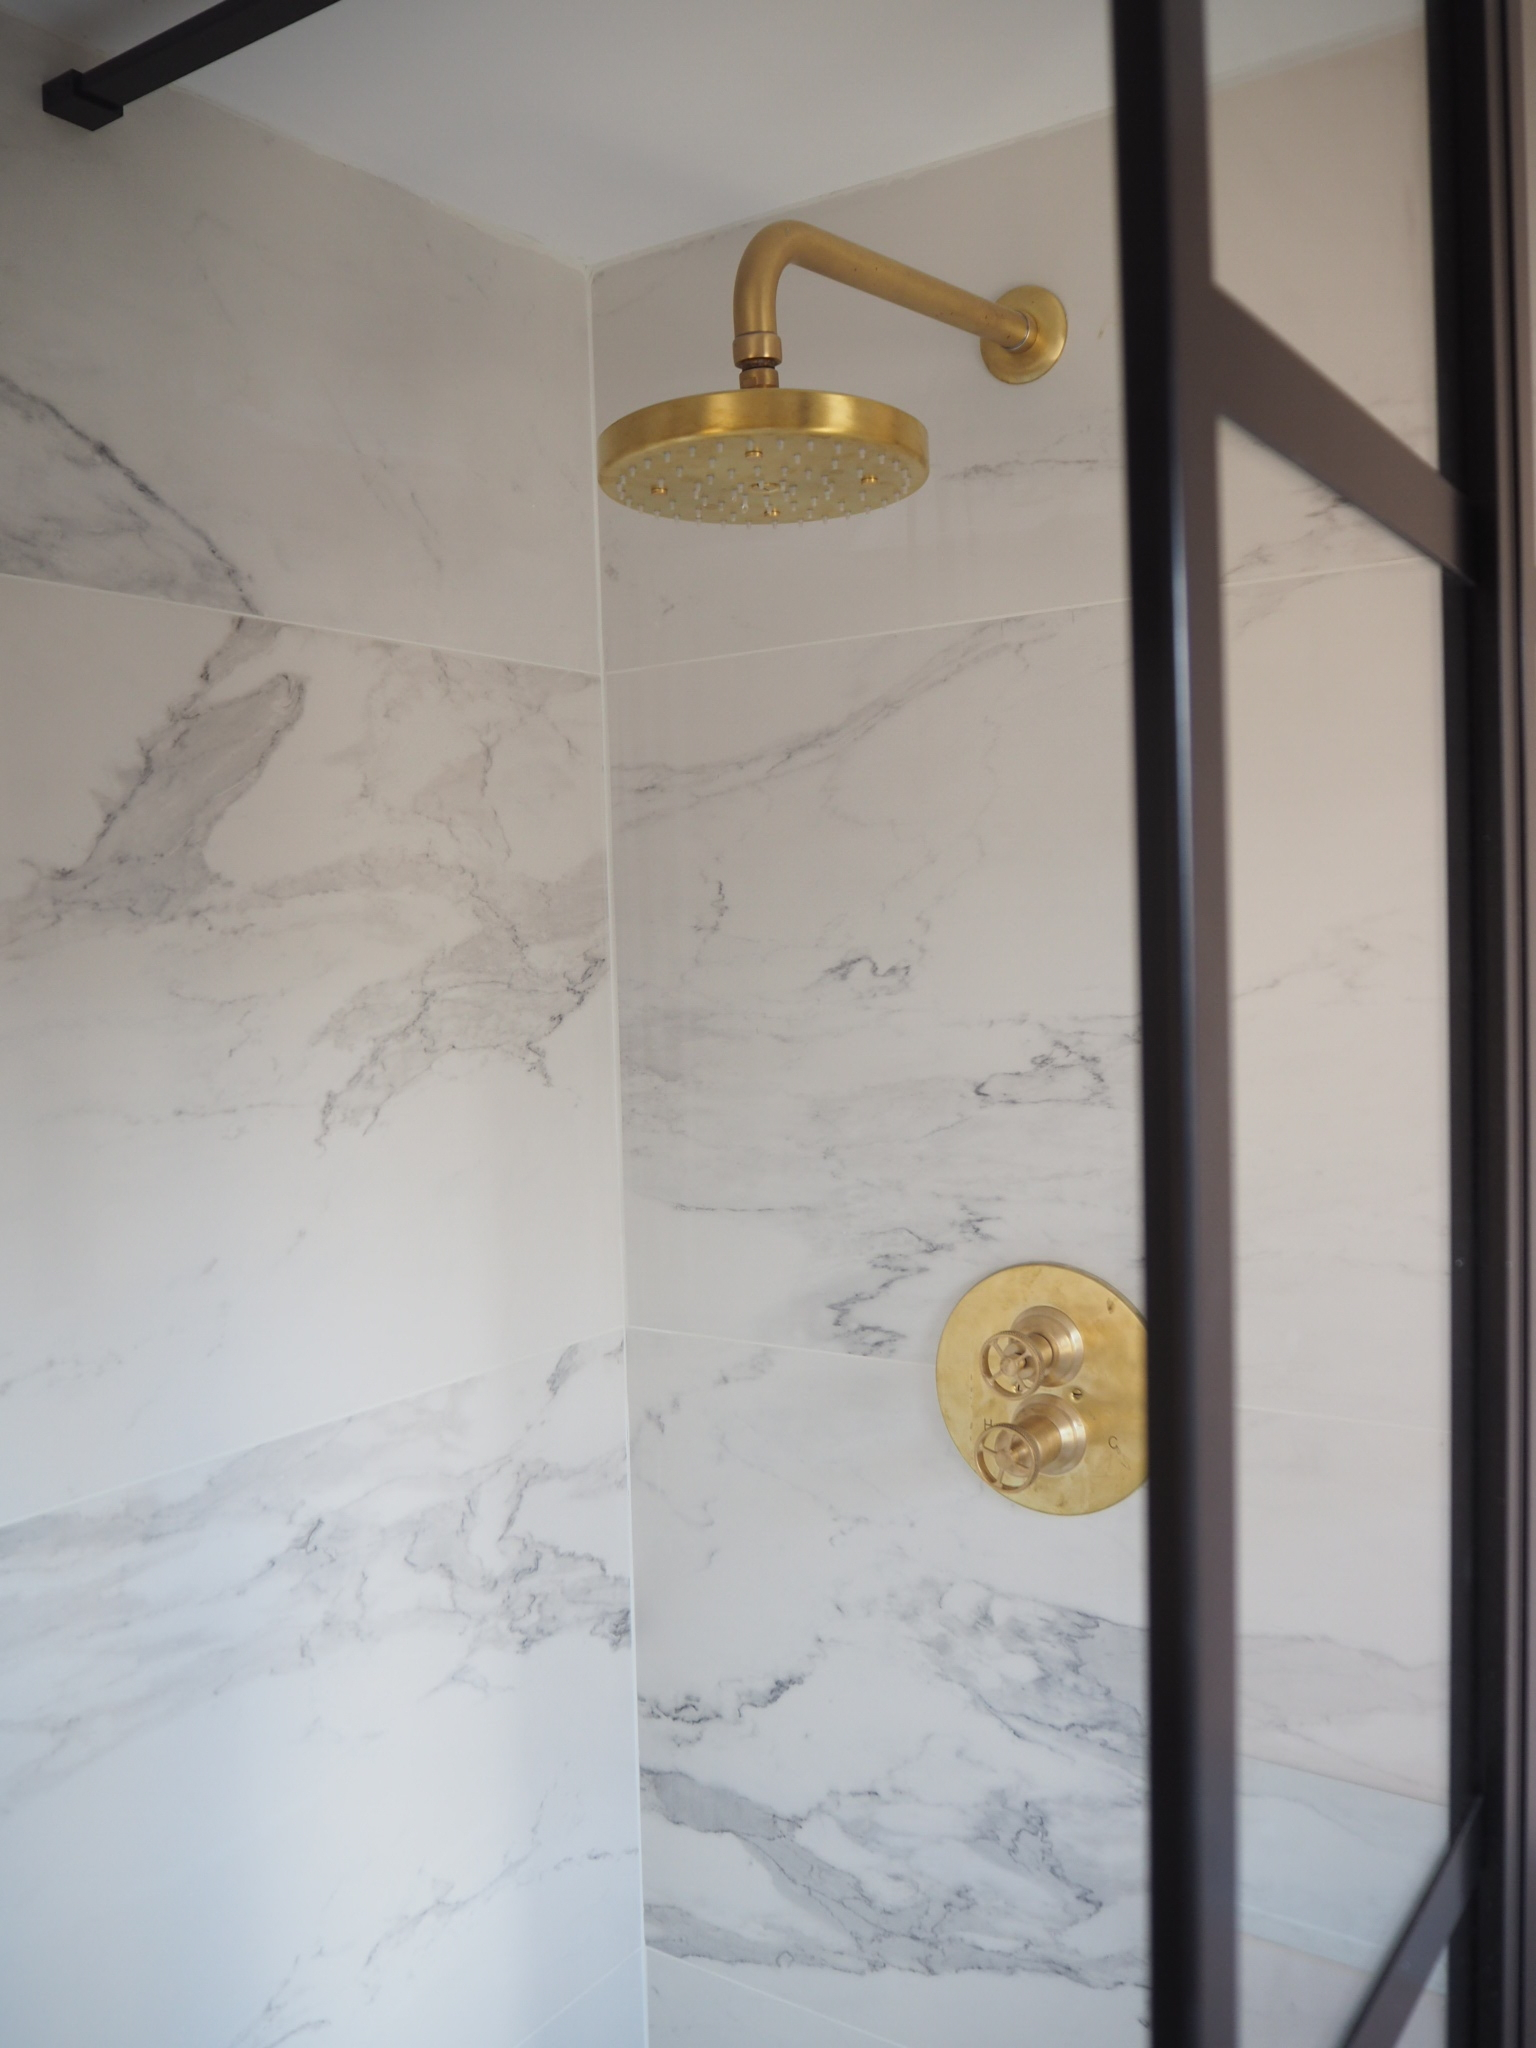 Carrera marble tileS,  Acme shower from Aston Matthews and Black metal shower frame from Drench